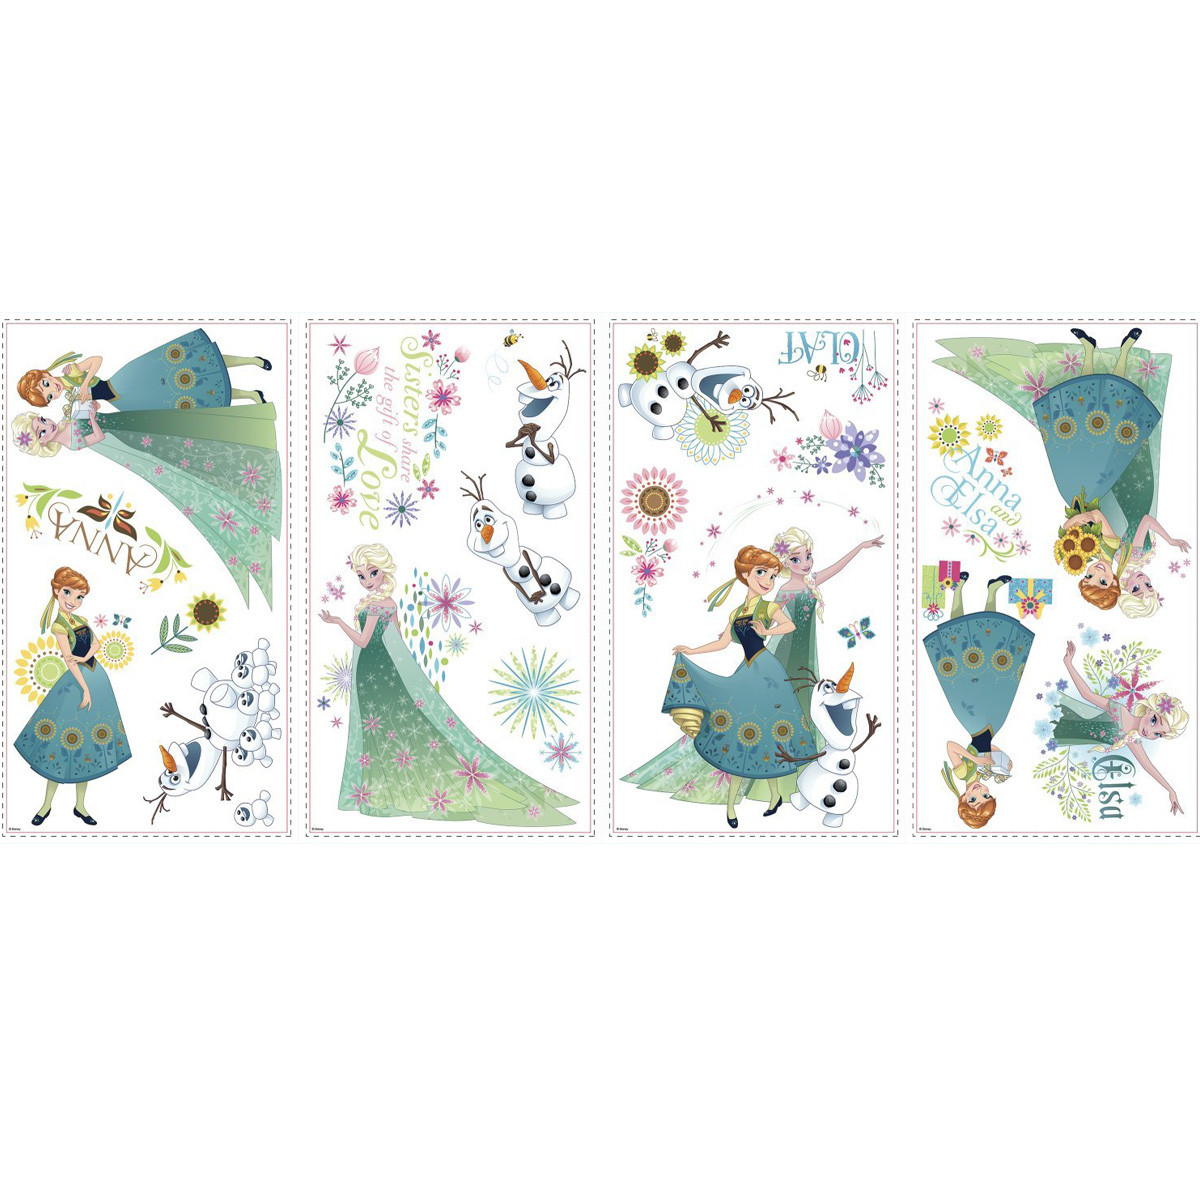 19 Stickers Printemps La Reine des Neiges Disney Frozen